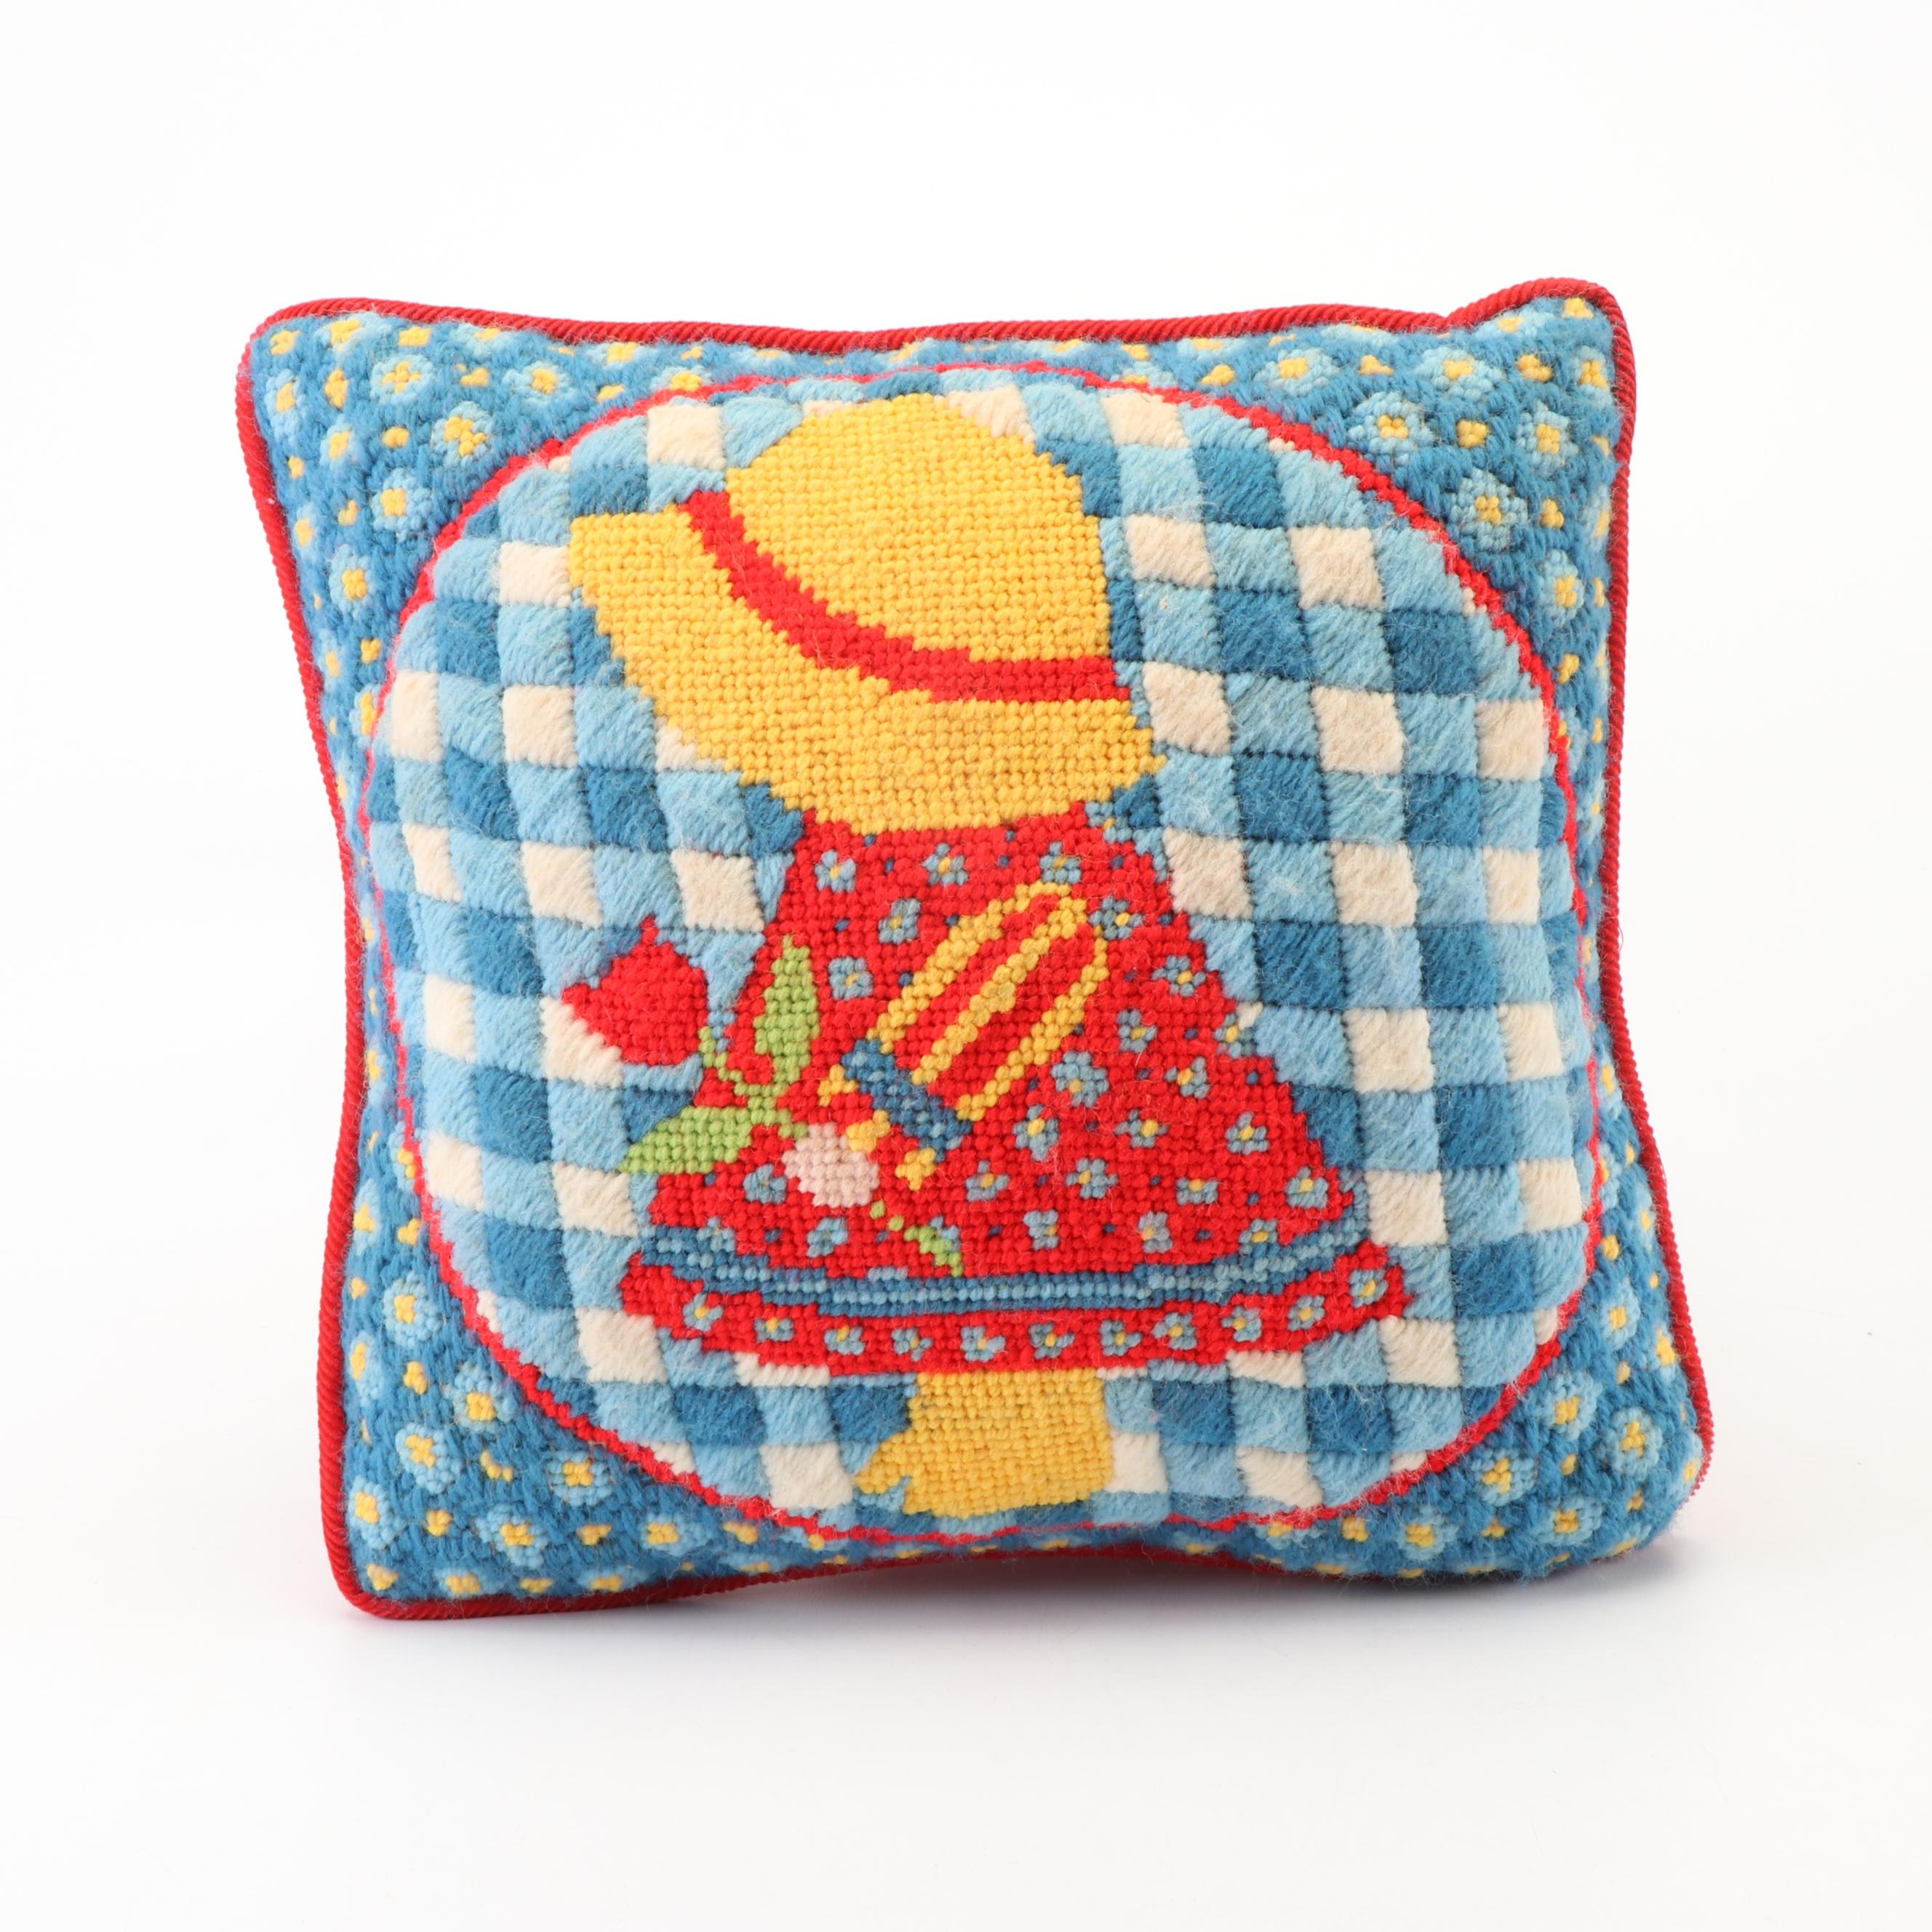 Needlepoint Girl with Bonnet Accent Pillow with Corduroy Reverse